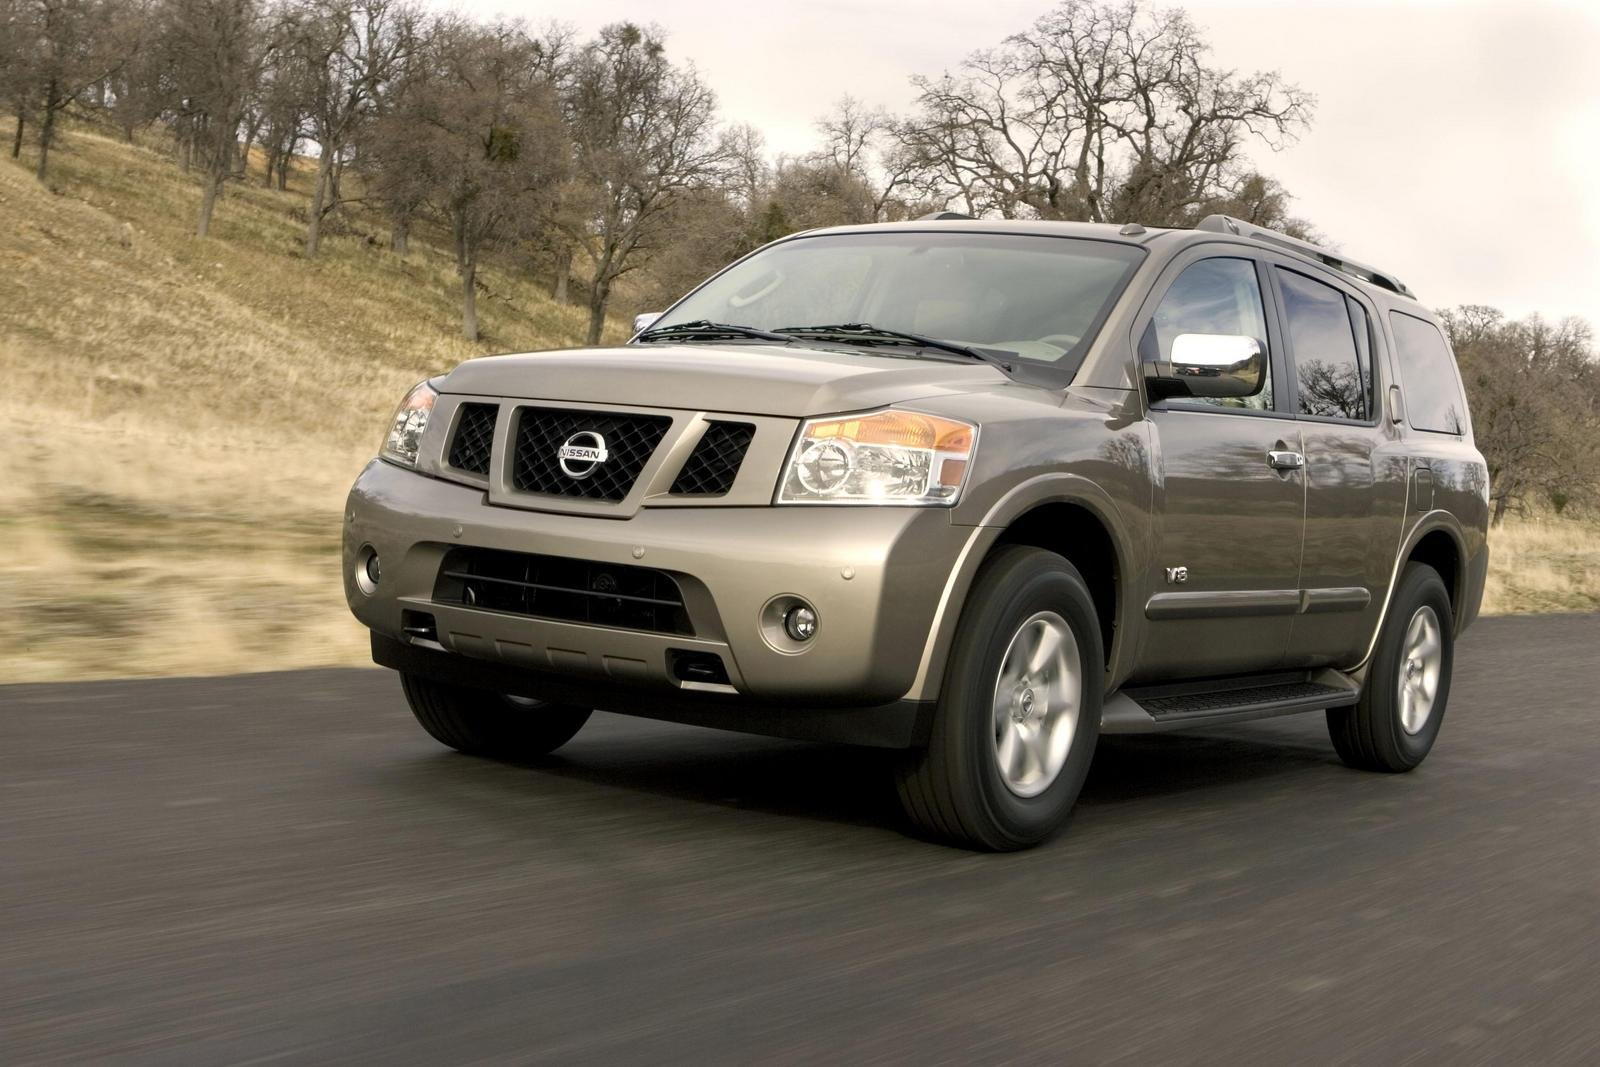 2008 Nissan Titan And Armada Pricing Announced News Top